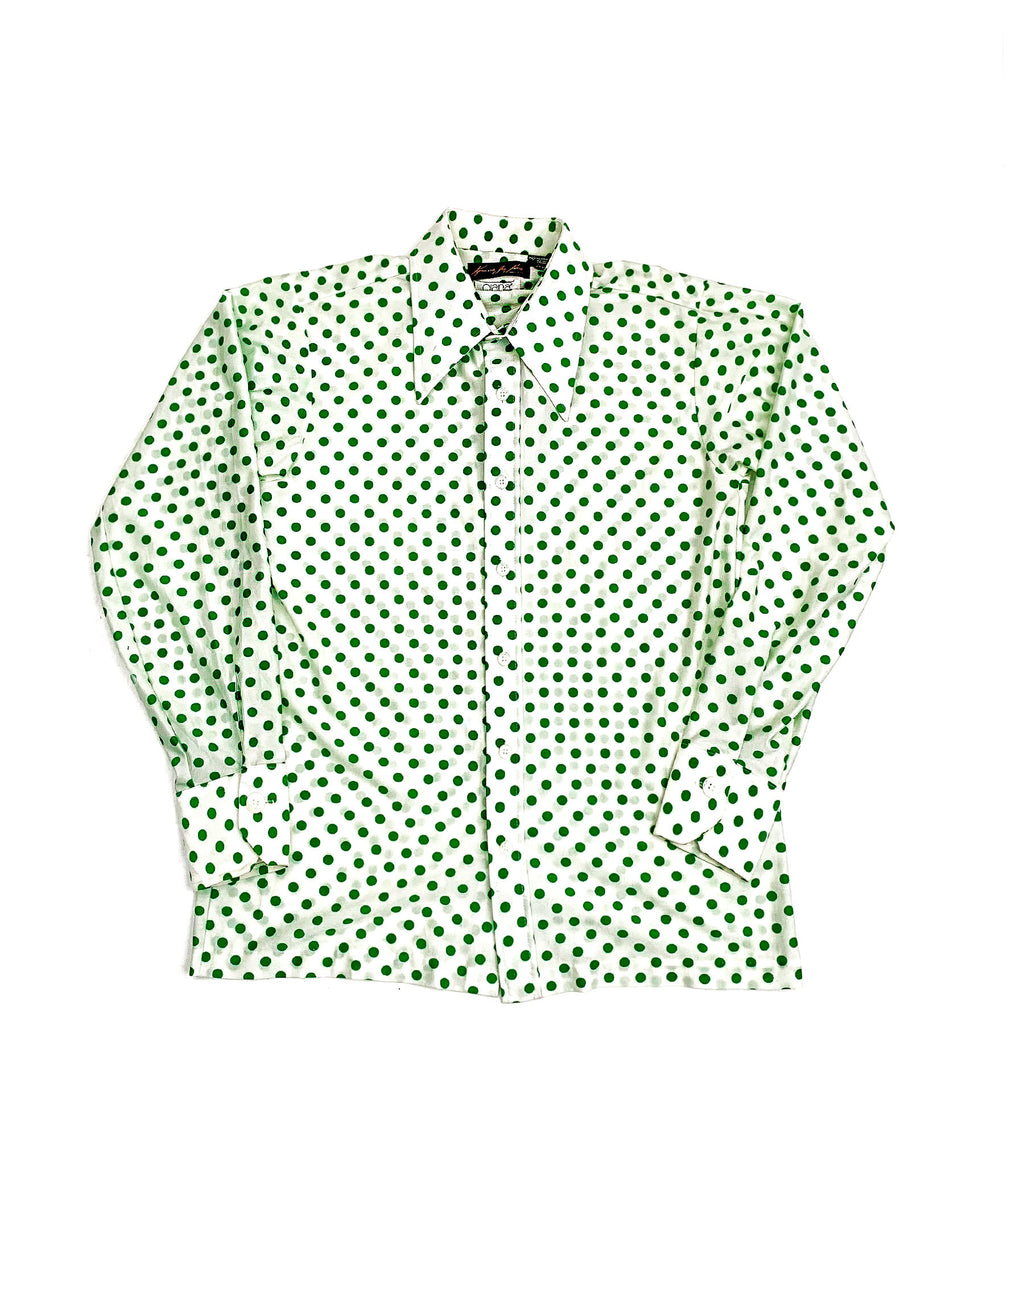 70'S DAGGERED POLKA DOT SHIRT